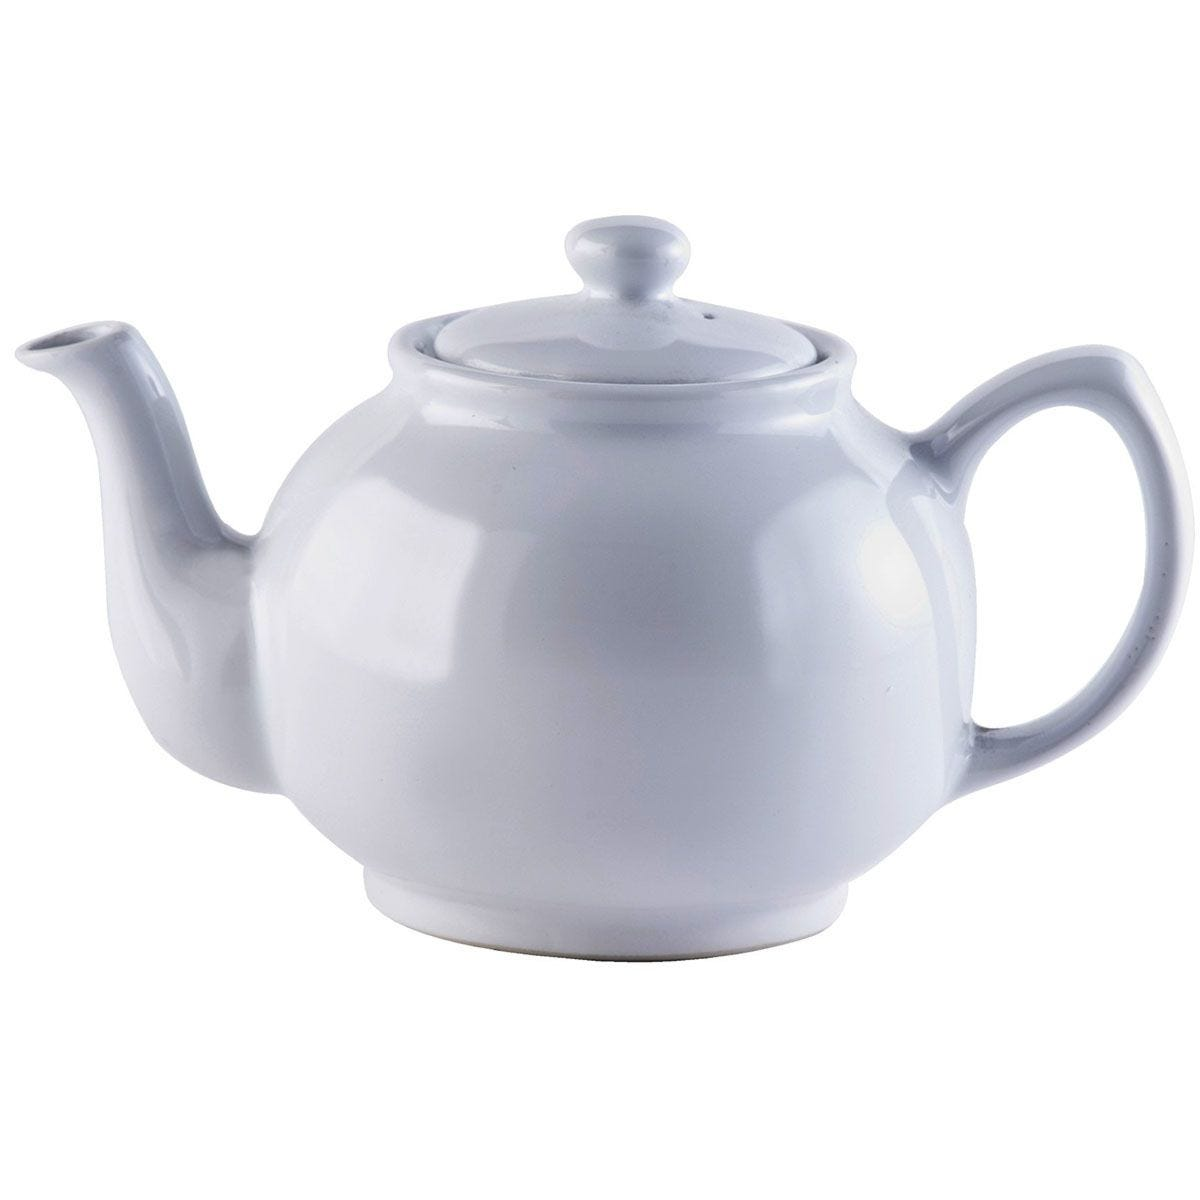 Price & Kensington 6-Cup Teapot - White